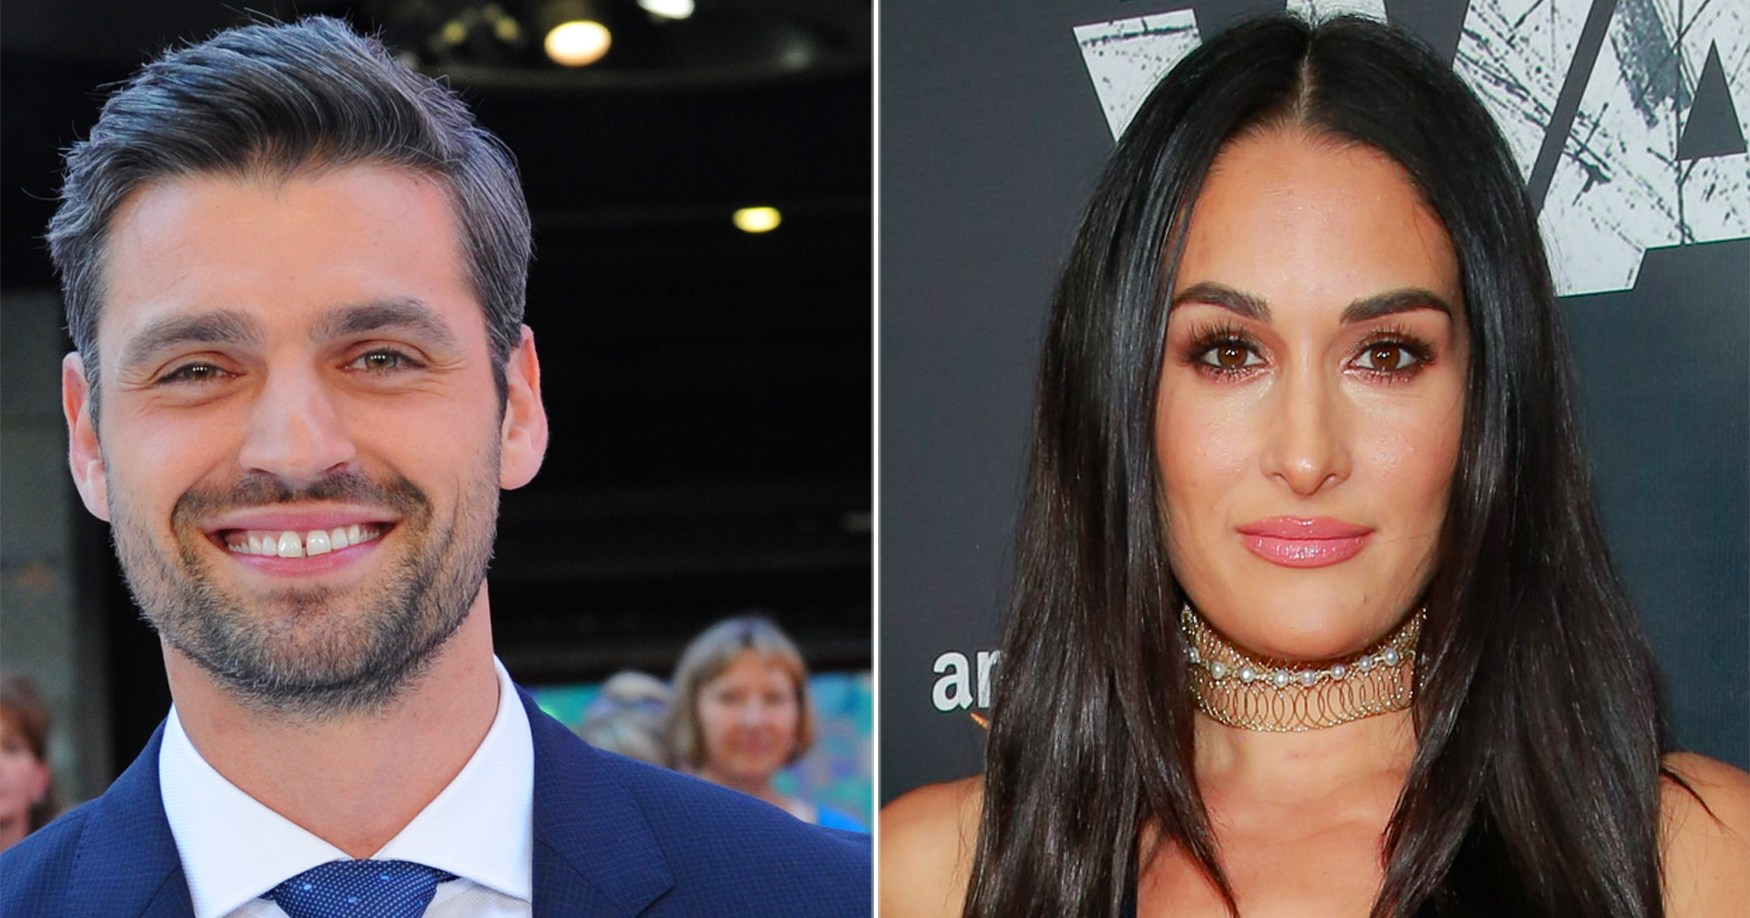 Who is nikki bella dating now